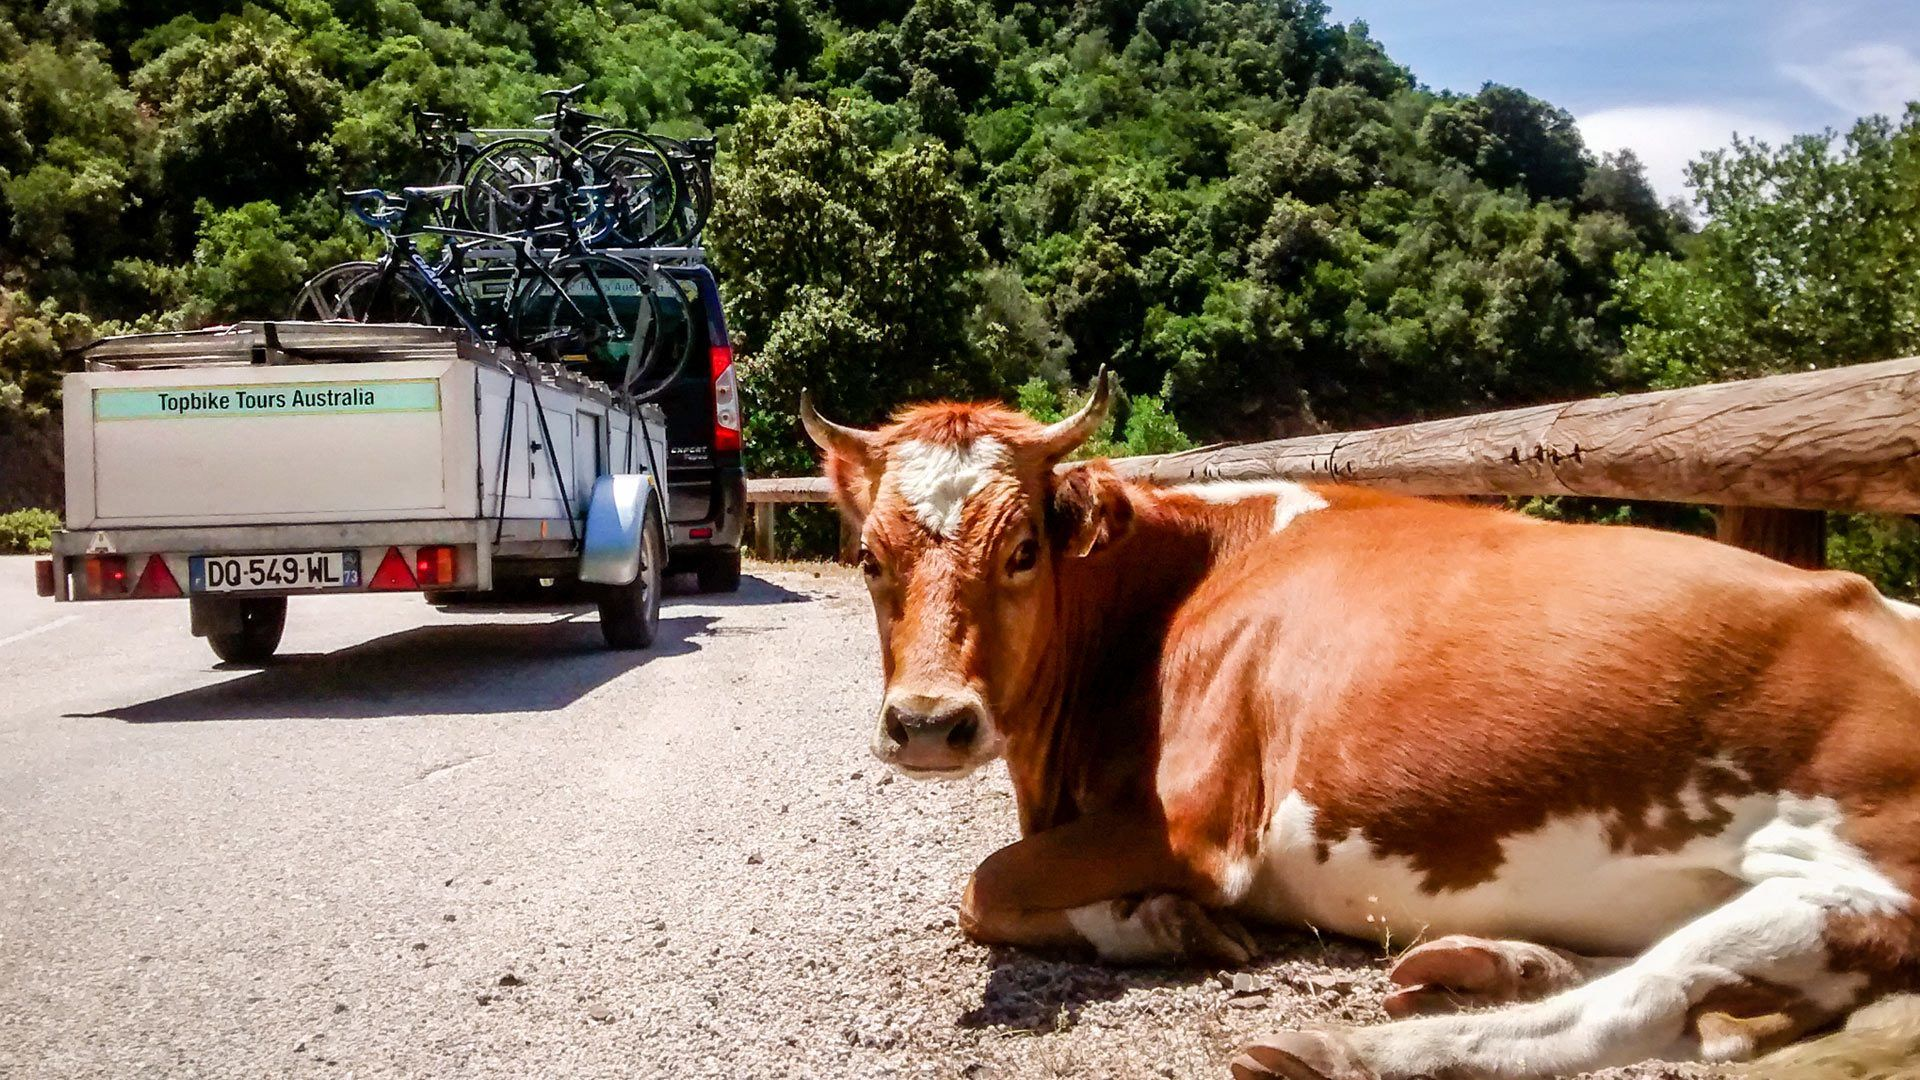 Don't be a Lazy Cow - Start planning your next Tour with Topbike Tours Australia - Fully Supported European Cycling Holidays